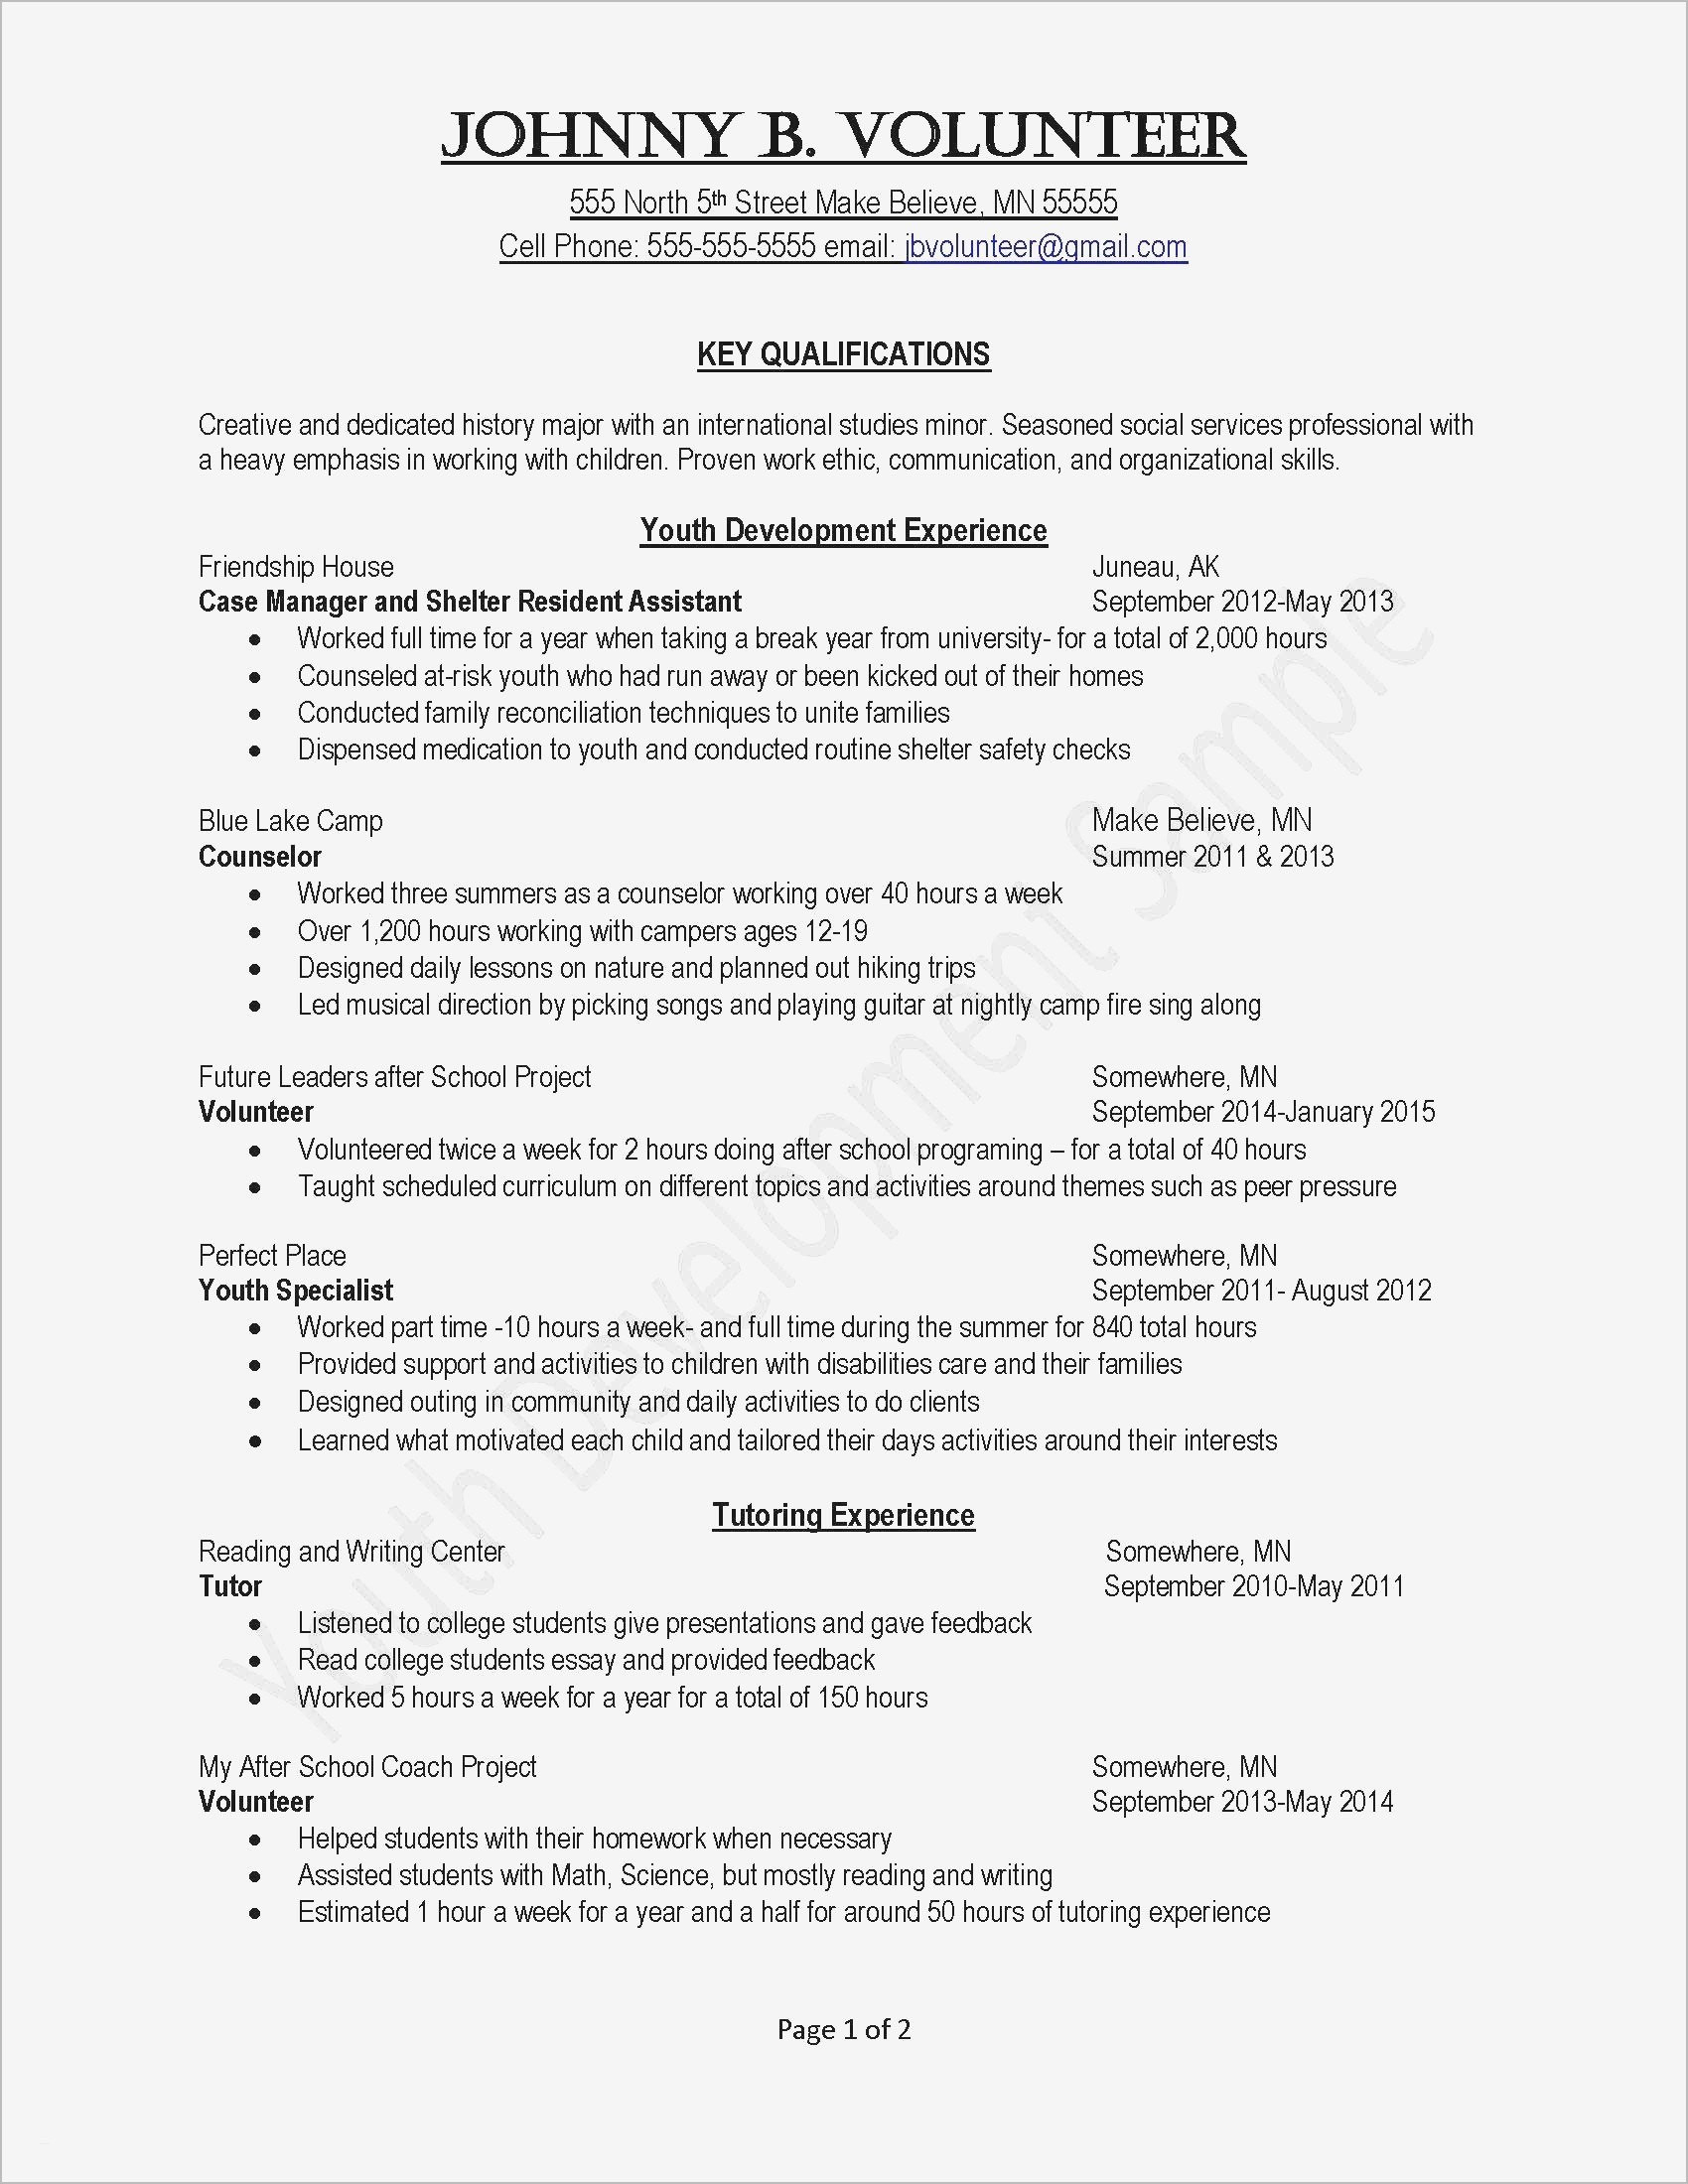 Spousal Support Letter Template - Free Templates for Resumes and Cover Letters Best Job Fer Letter